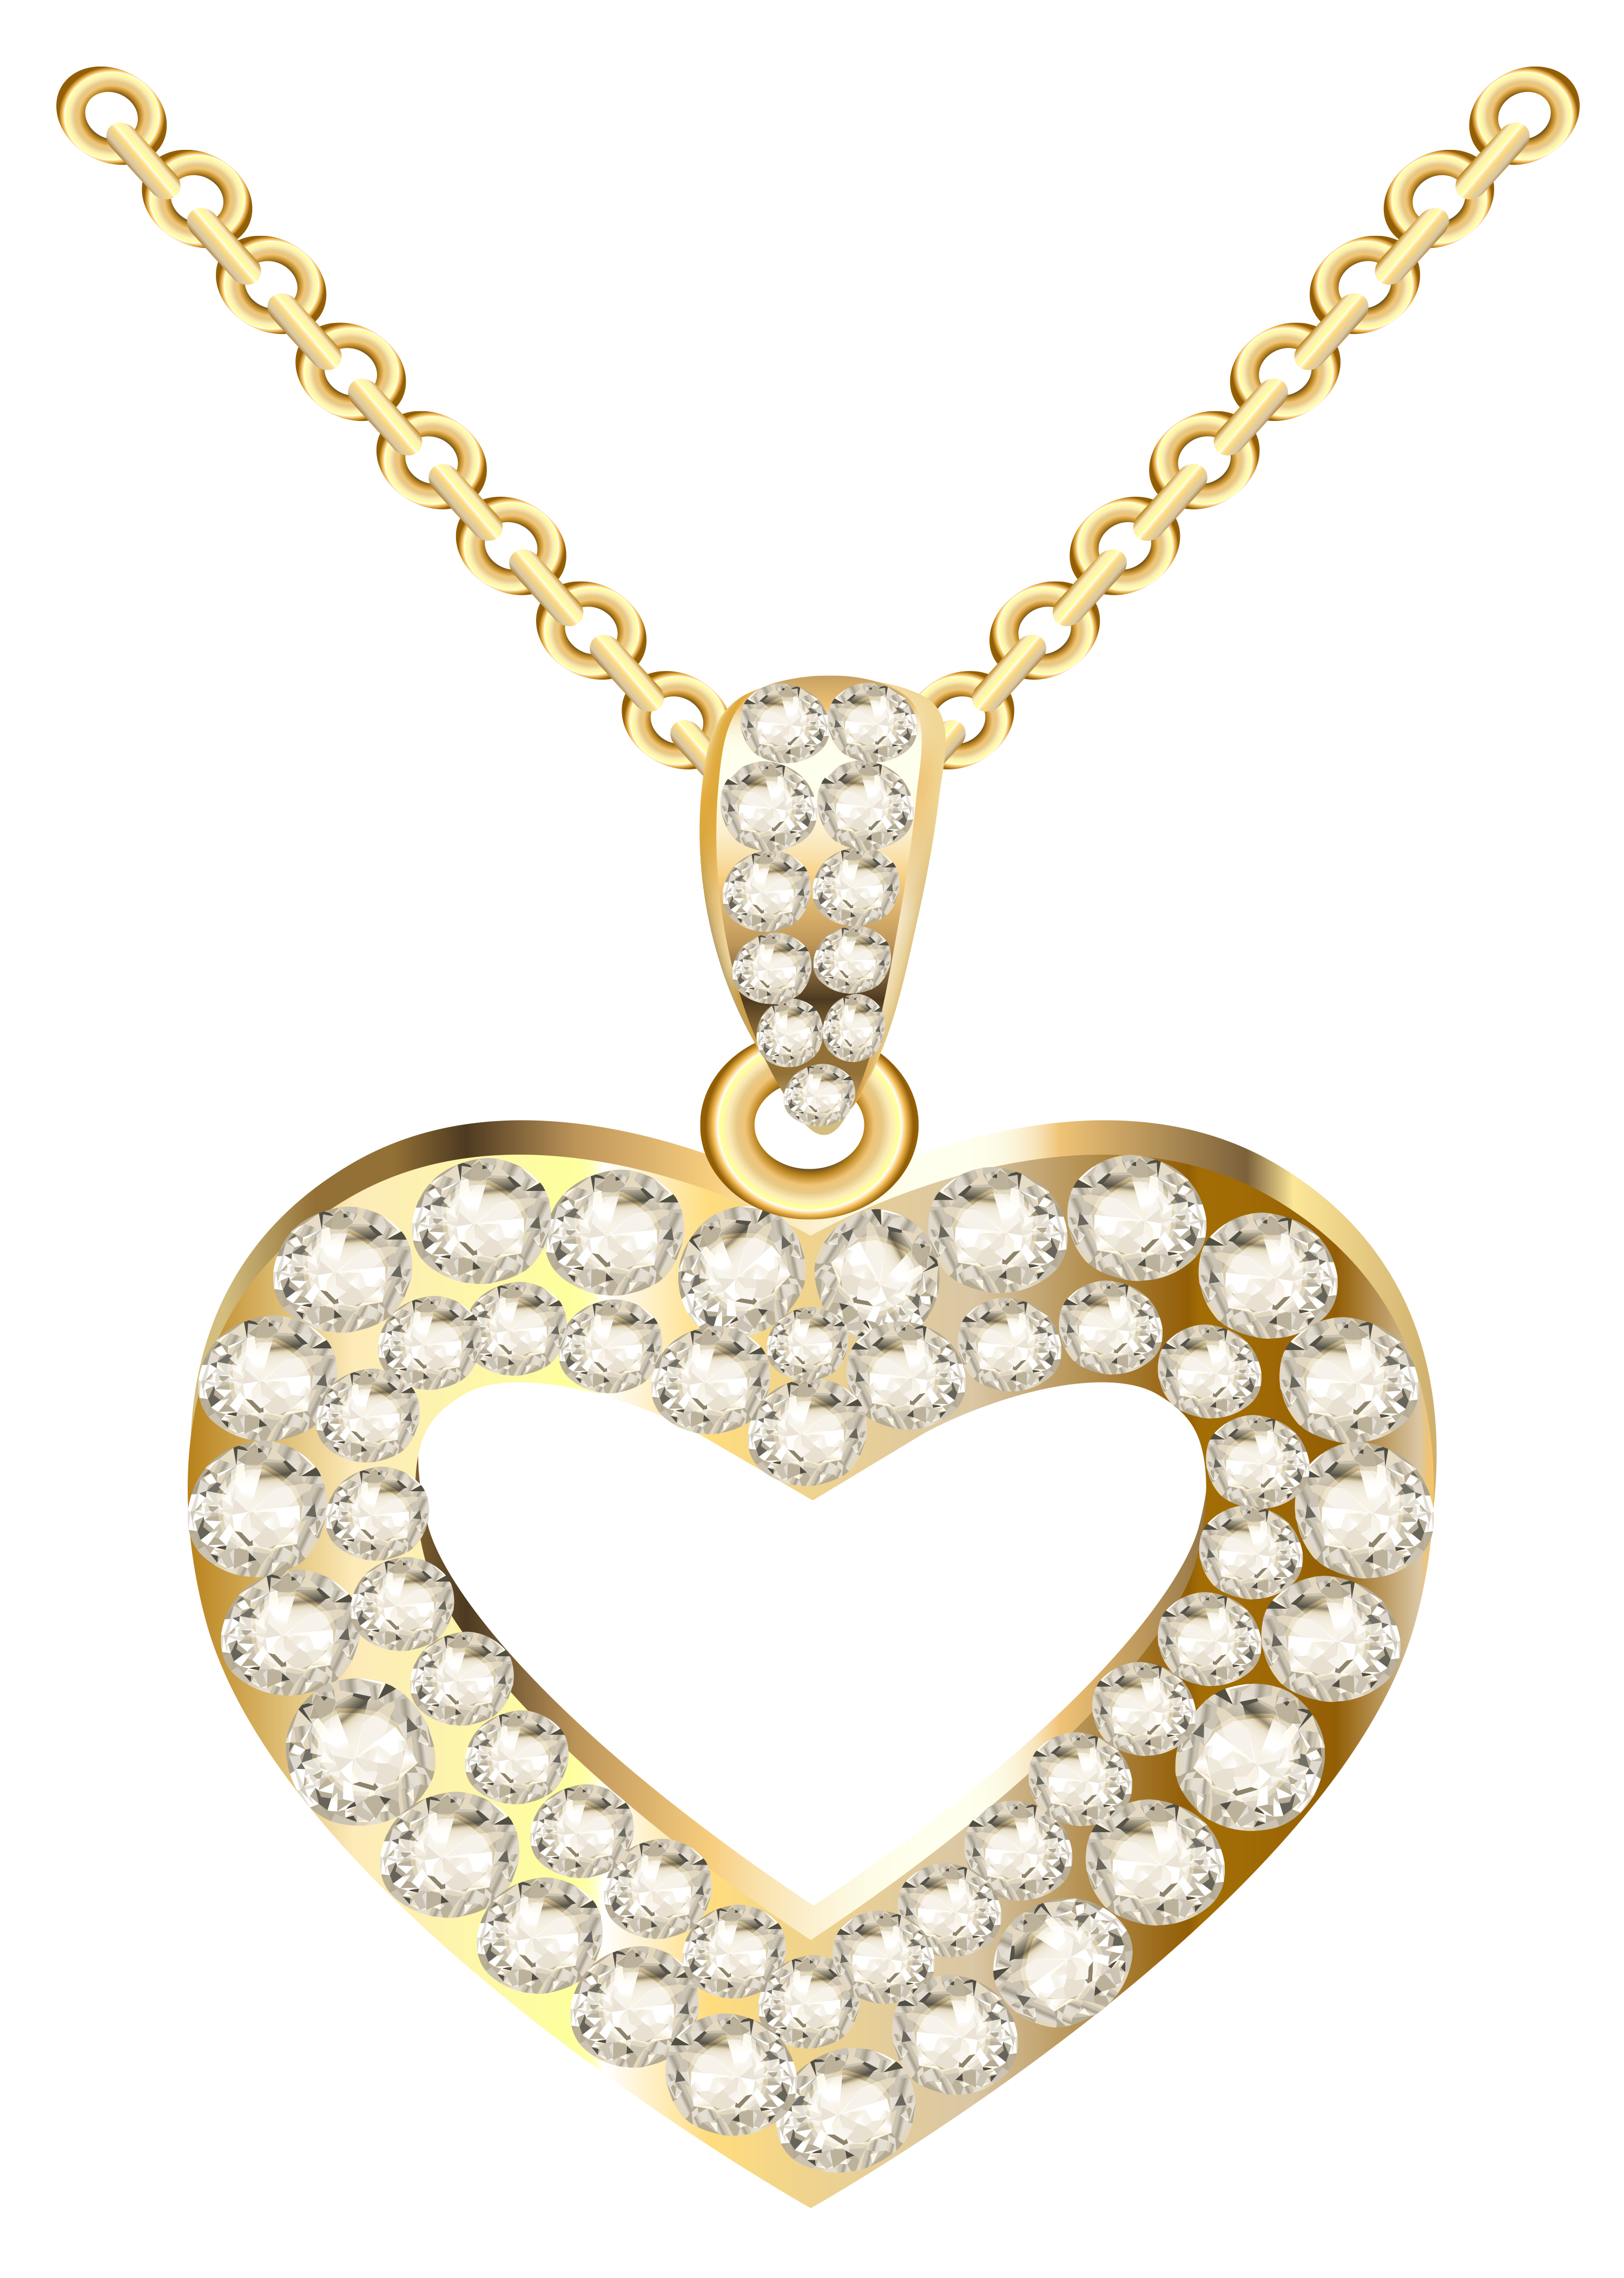 Diamond clipart diamond necklace Full with Clipart View PNG